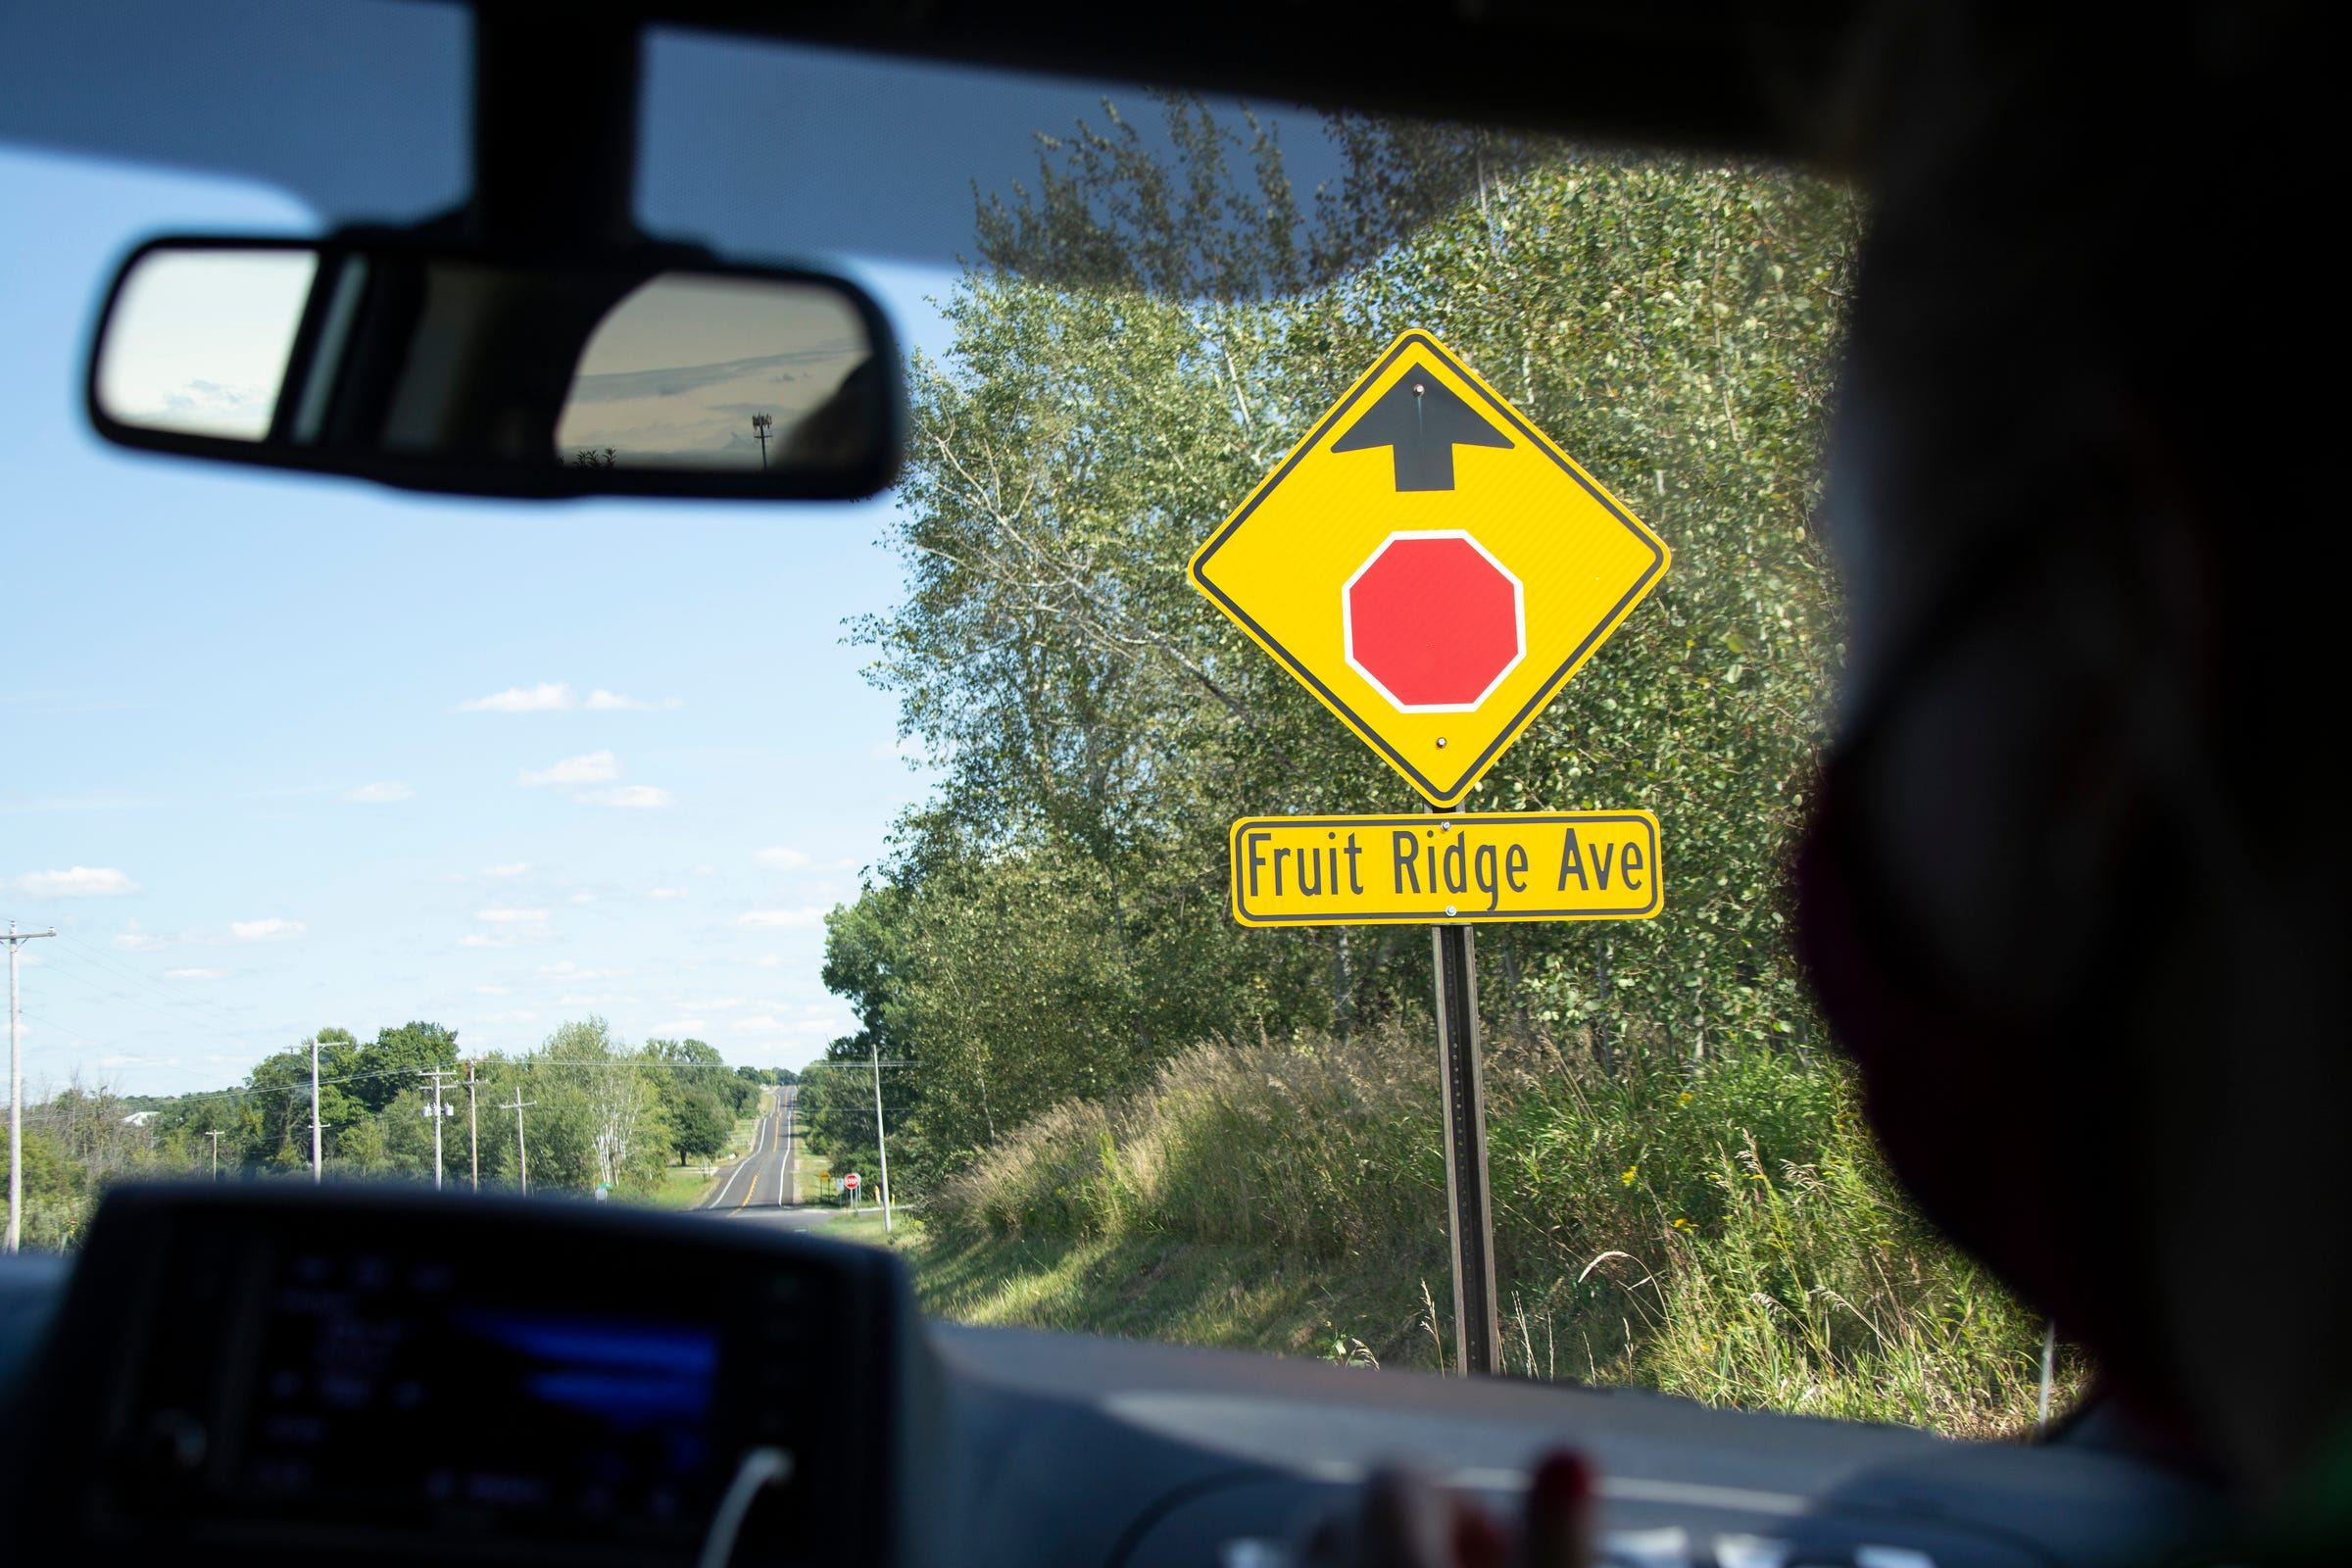 Migrant Legal Aid workers drive to Fruit Ridge near Grand Rapids to do outreach at migrant camps in August.